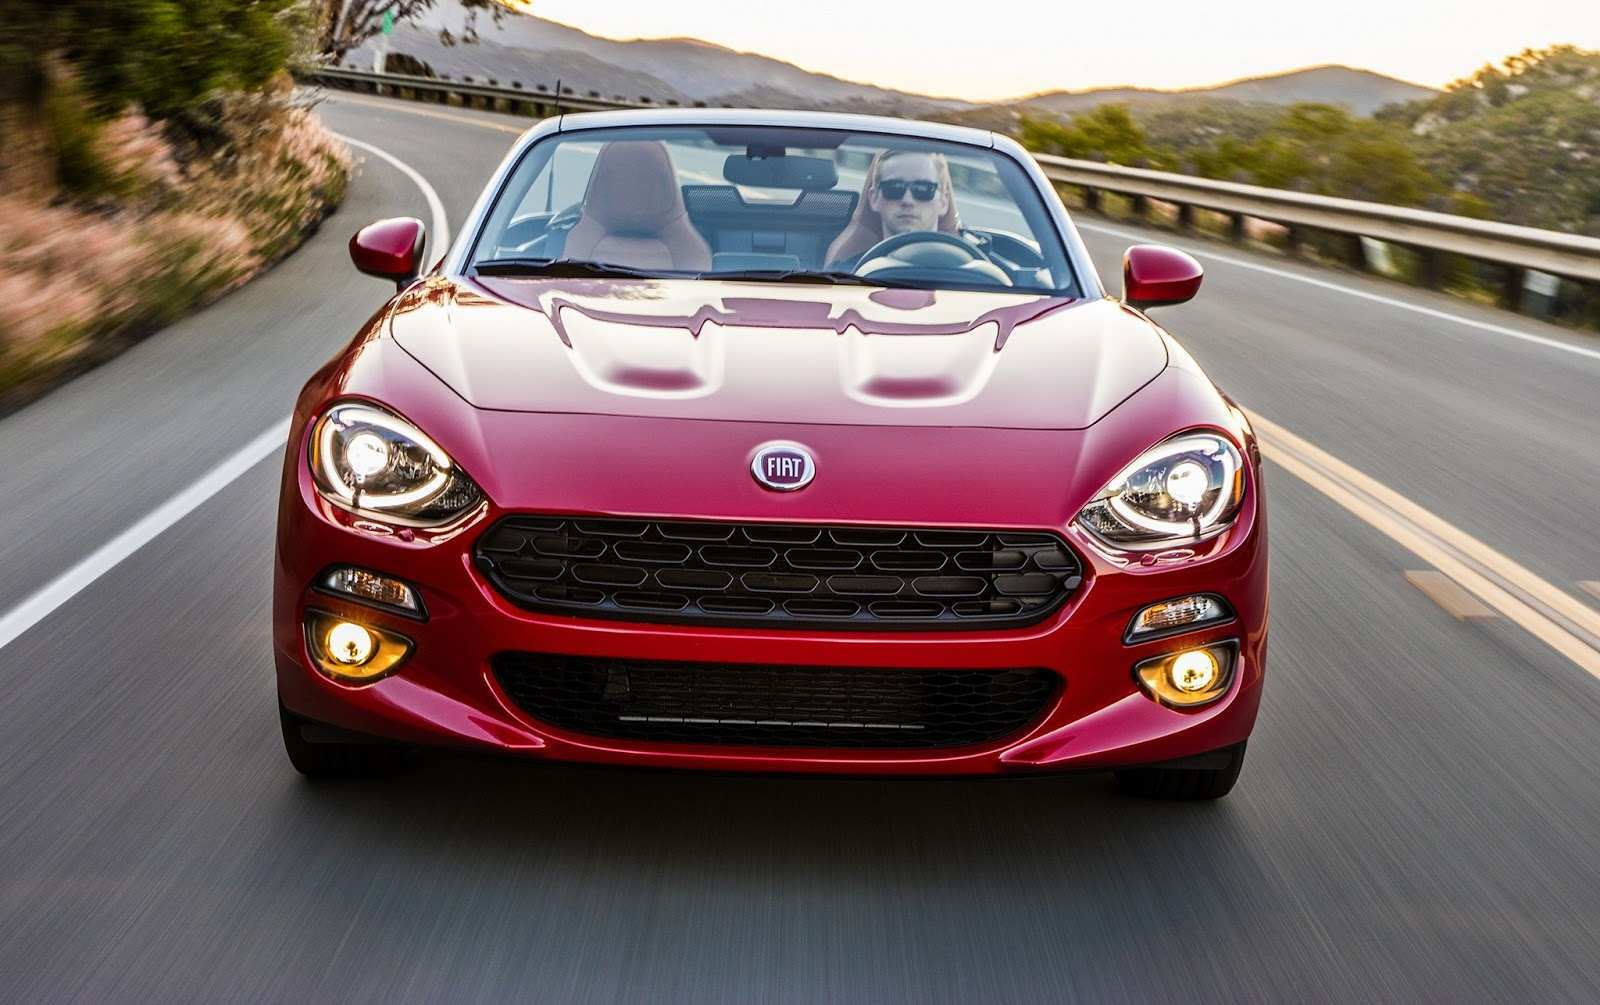 59 The 2020 Fiat Spider Interior